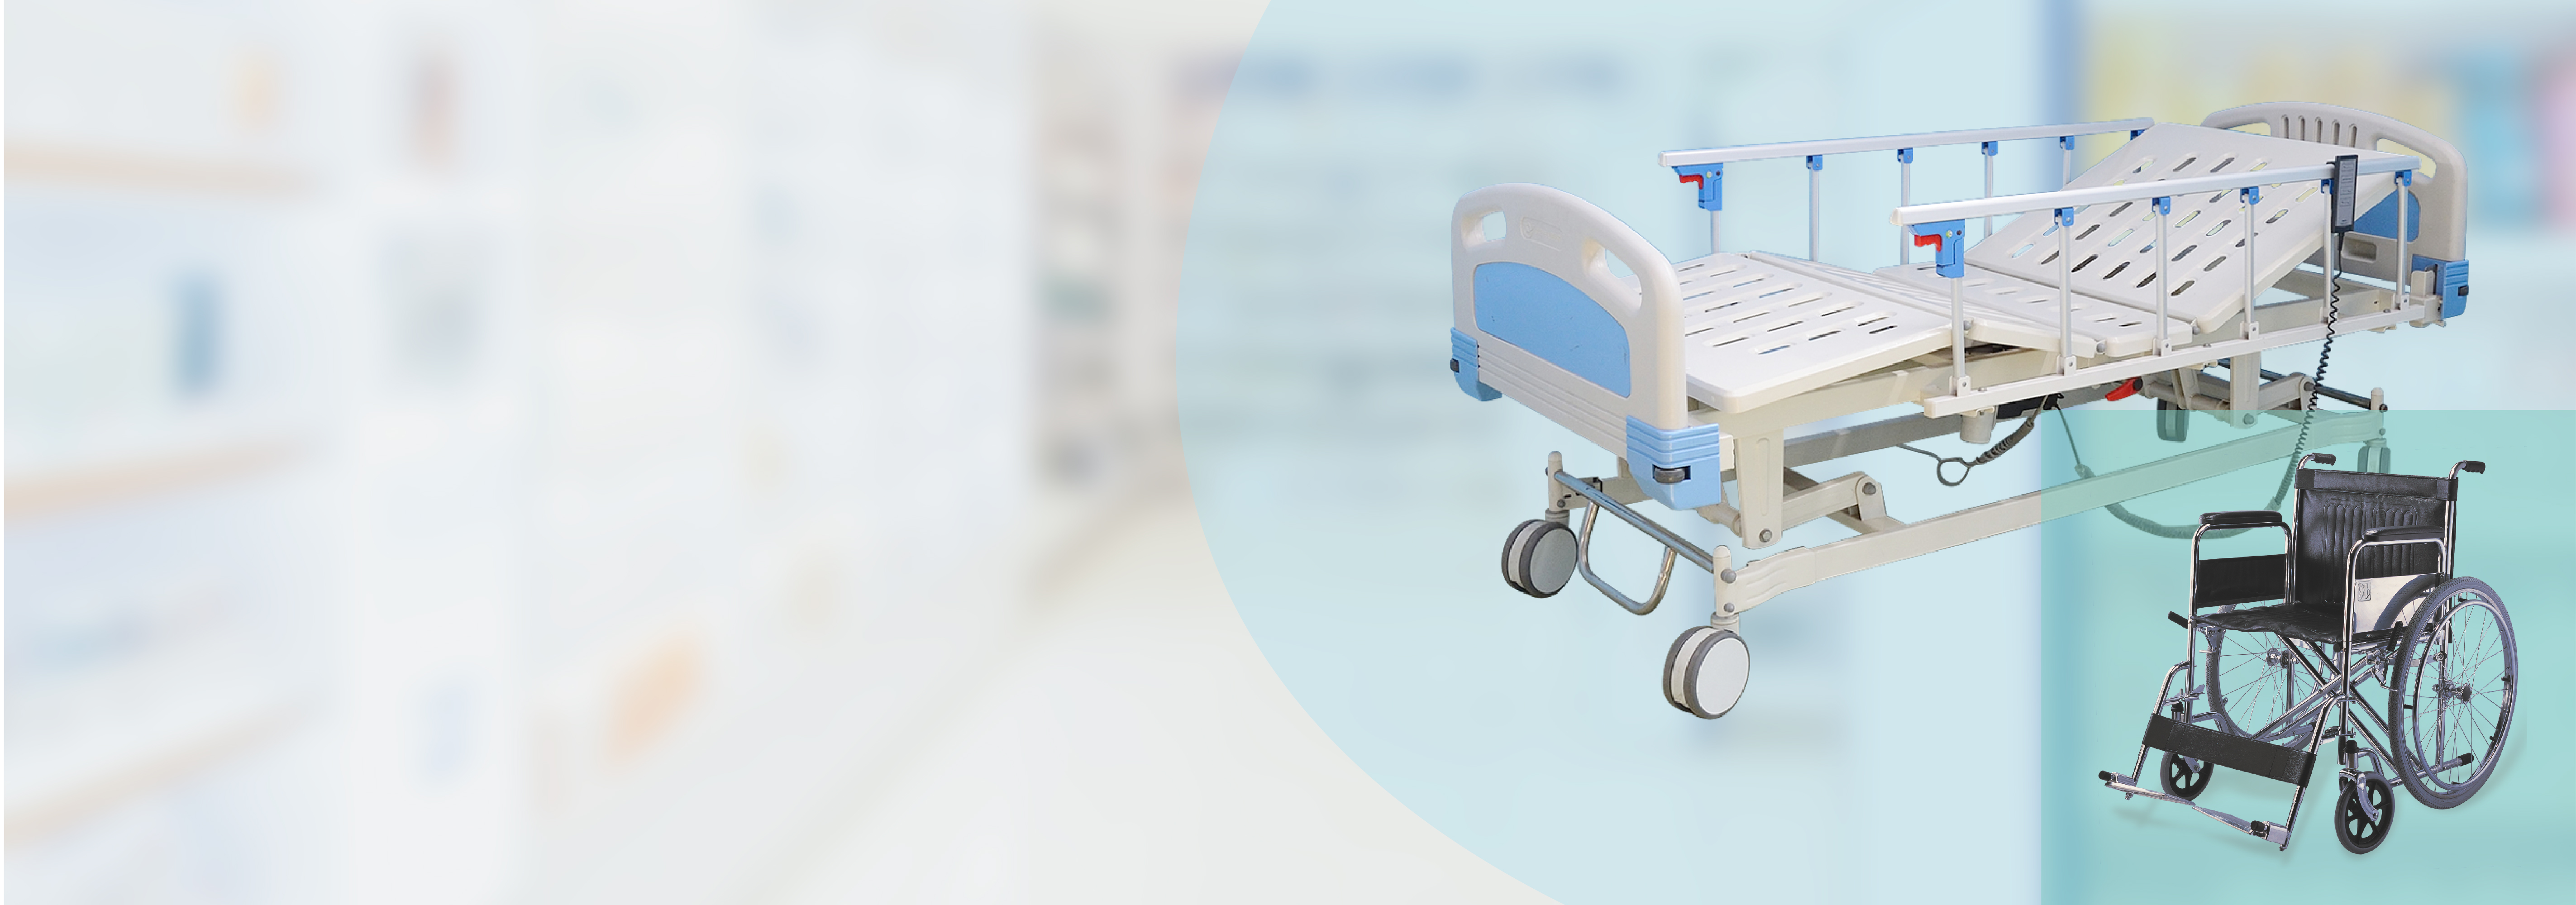 Medical Equipments, Home Health Care Products, Mobility Aids, Senior Care Products